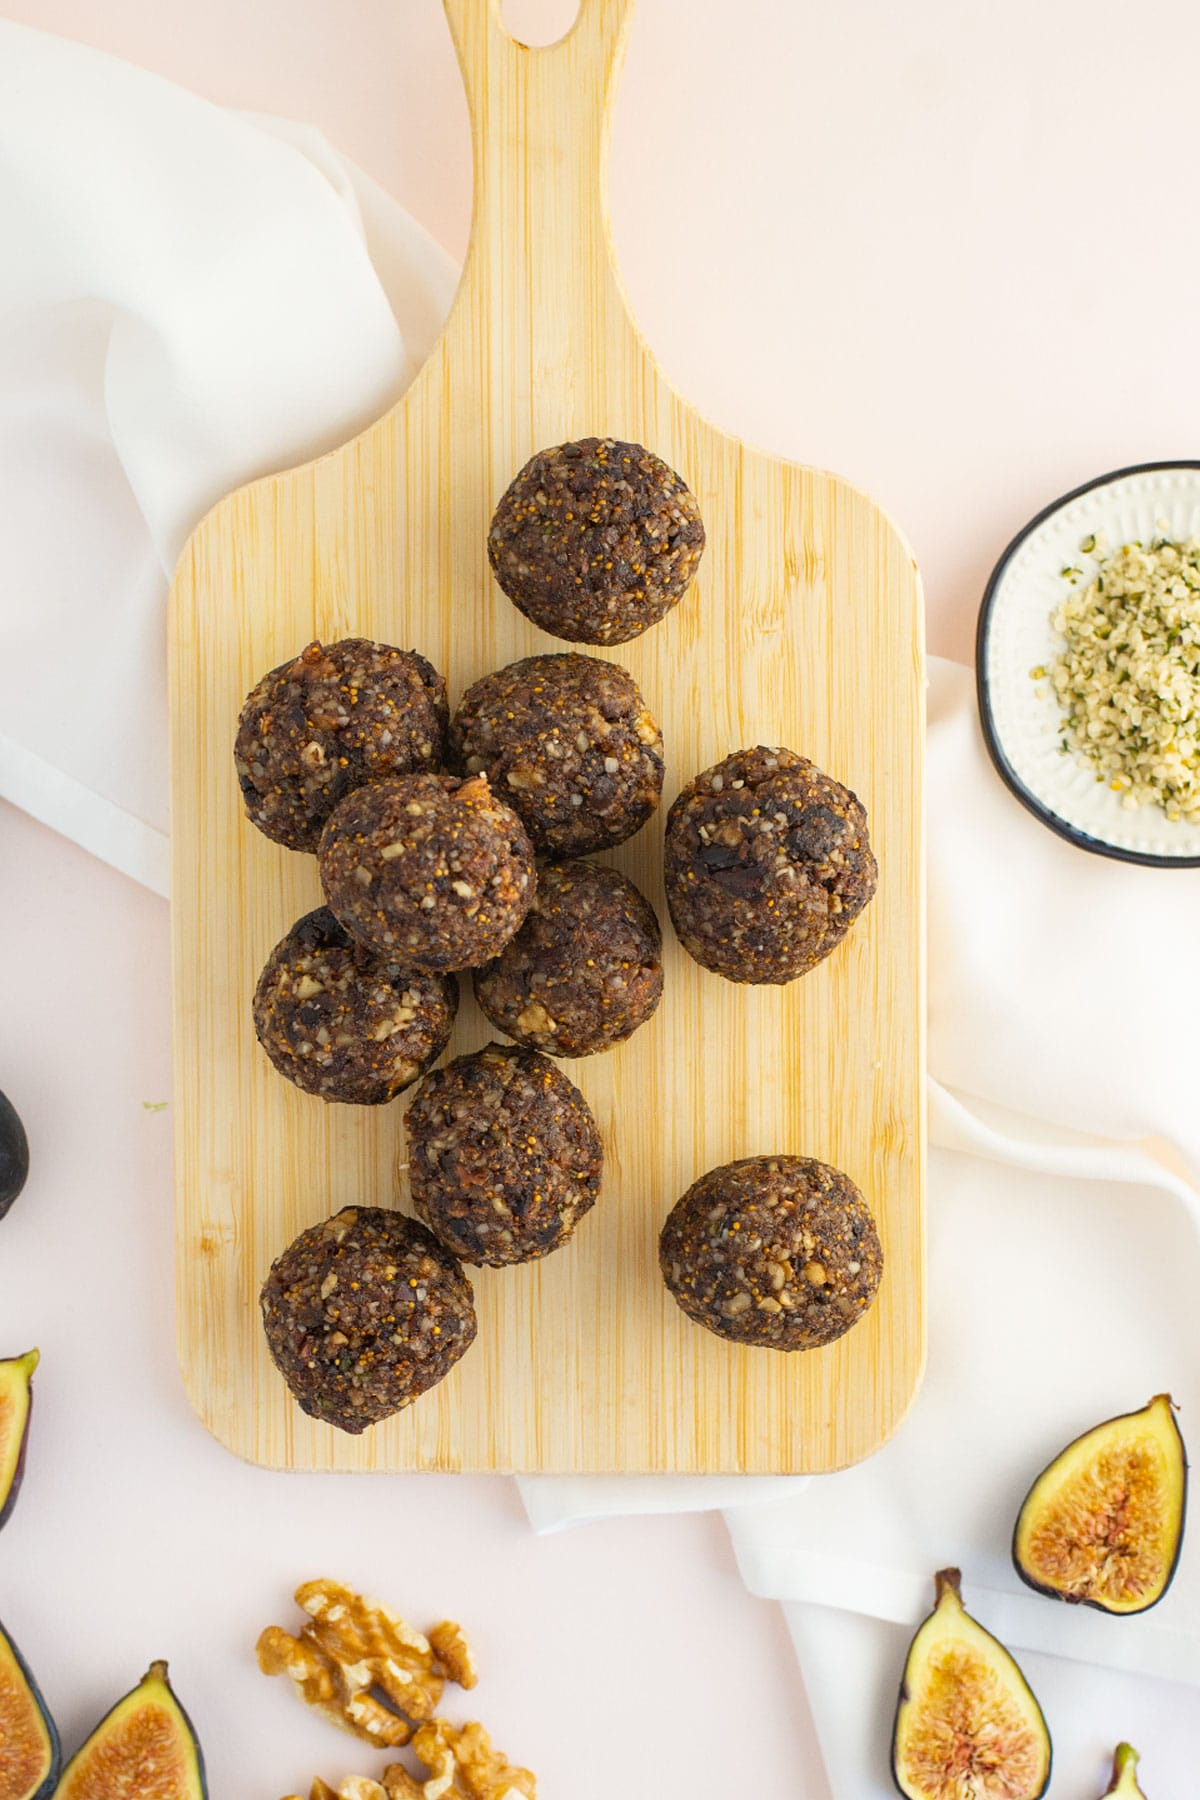 fig bliss balls on wood board with hempseeds